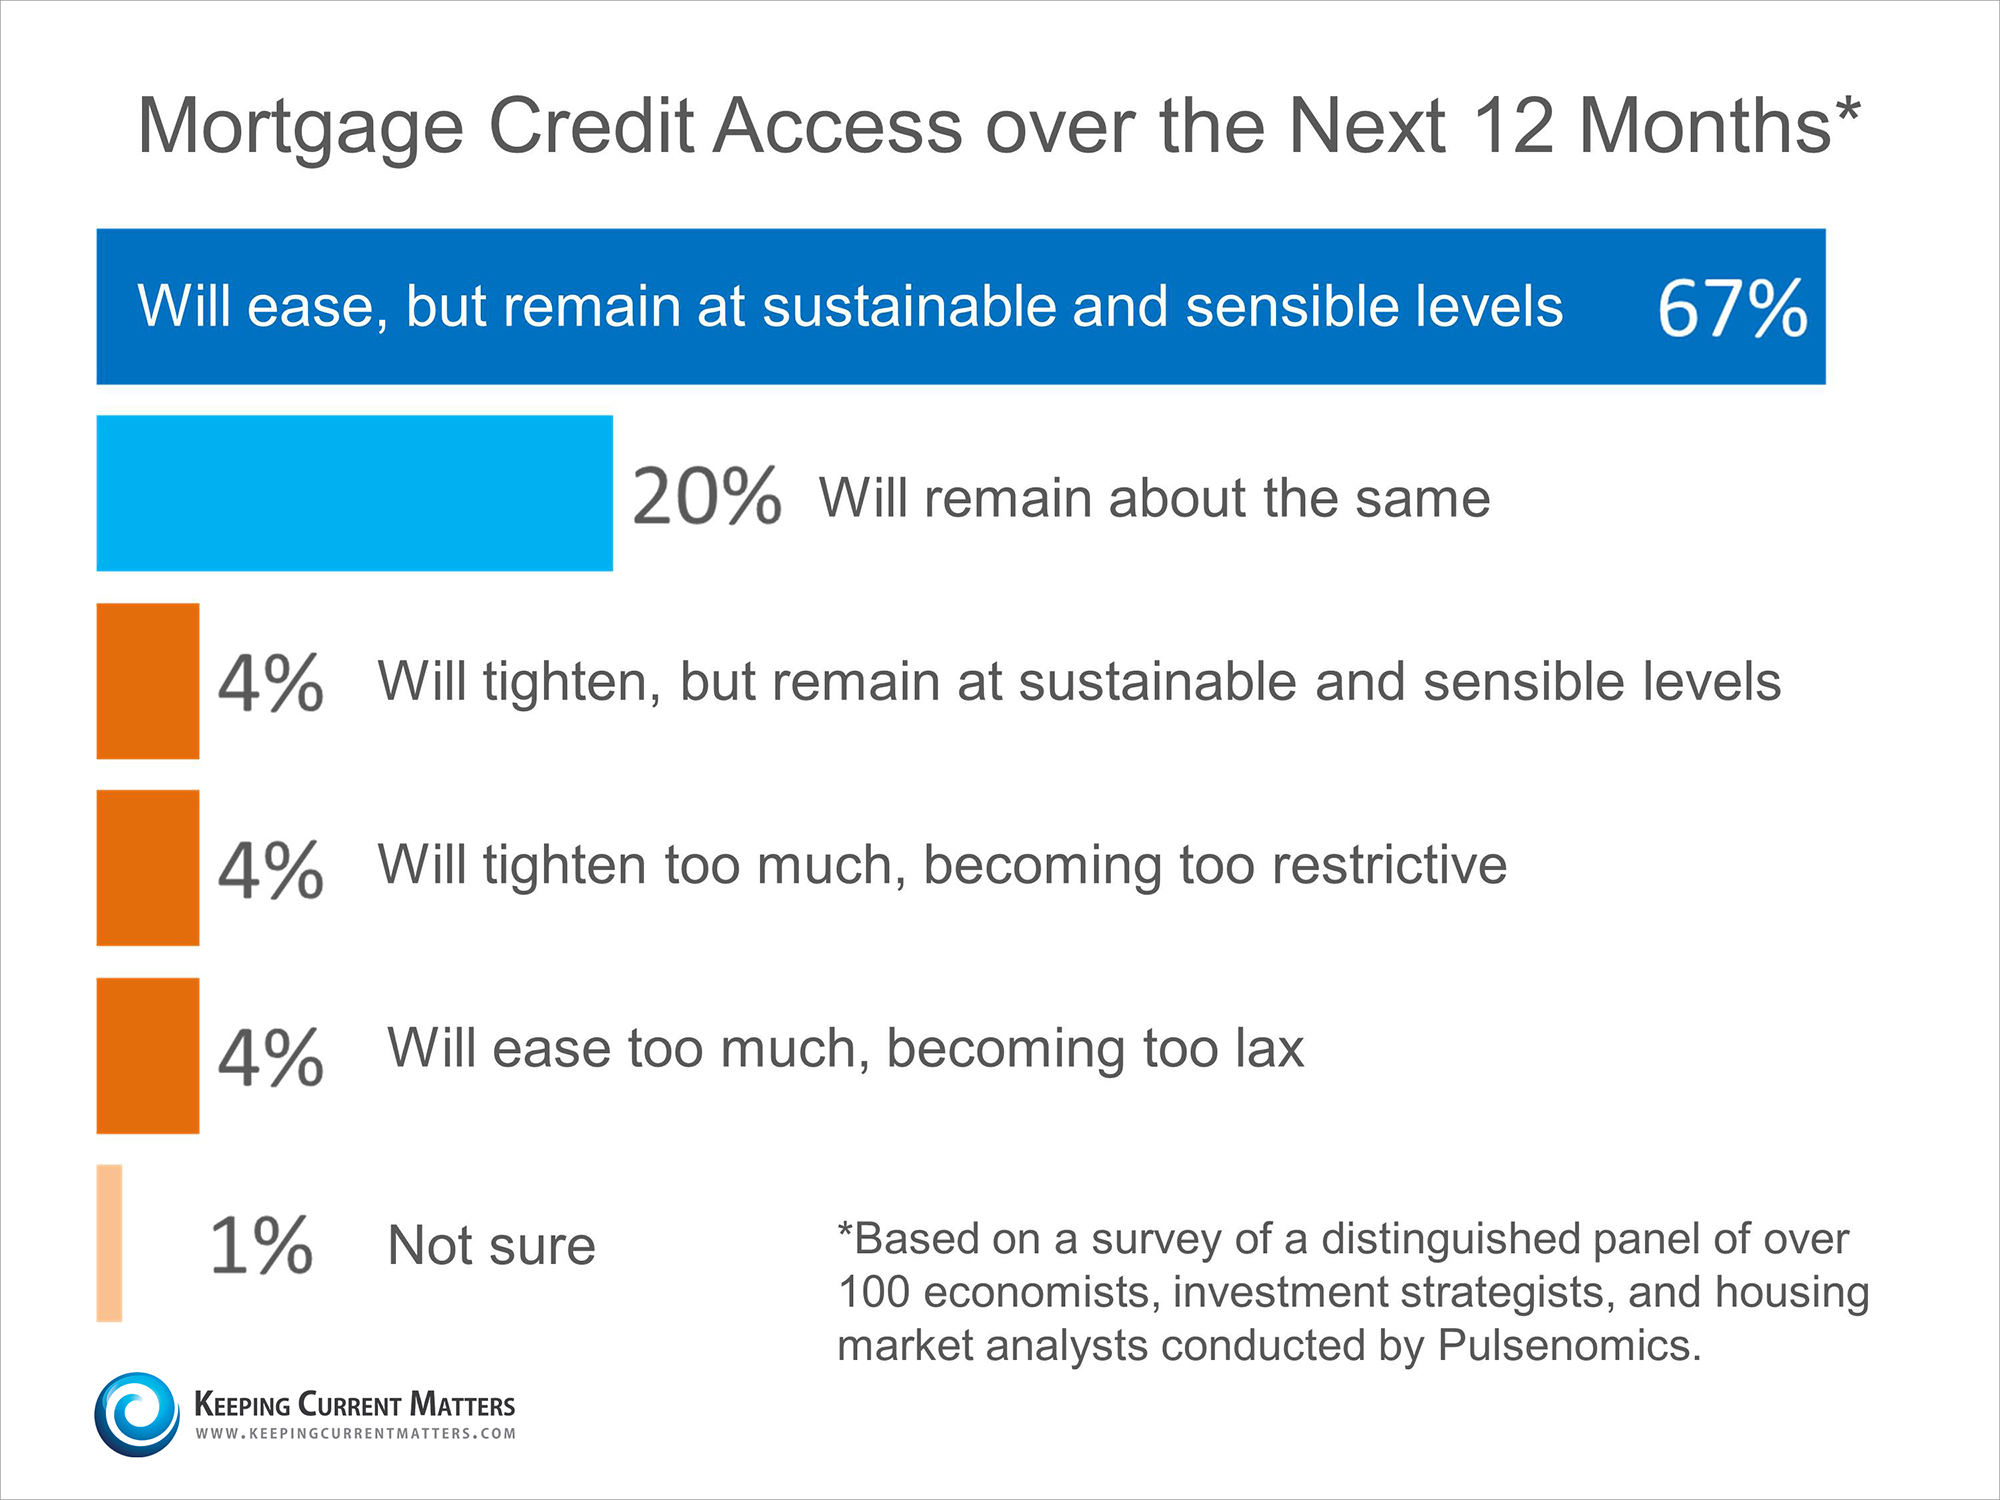 Mortgage Access Survey | Keeping Current Matters